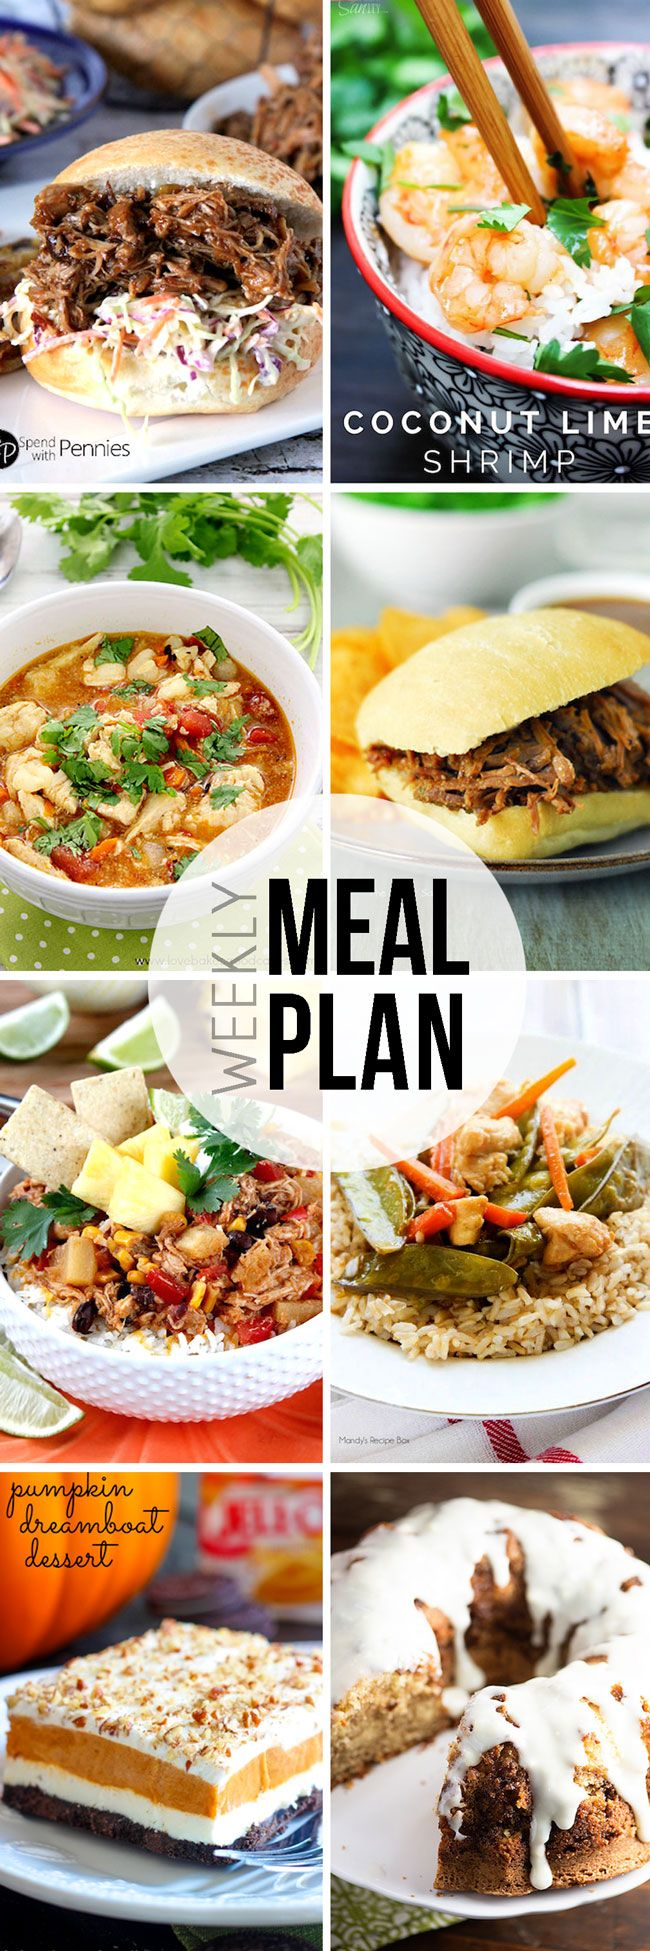 "STRESS FREE Weekly Meal Plan Sunday #13 so you always know ""What's For Dinner?"" before ever being asked. Top recipes from favorite bloggers who have done all your time consuming meal planning for you!"